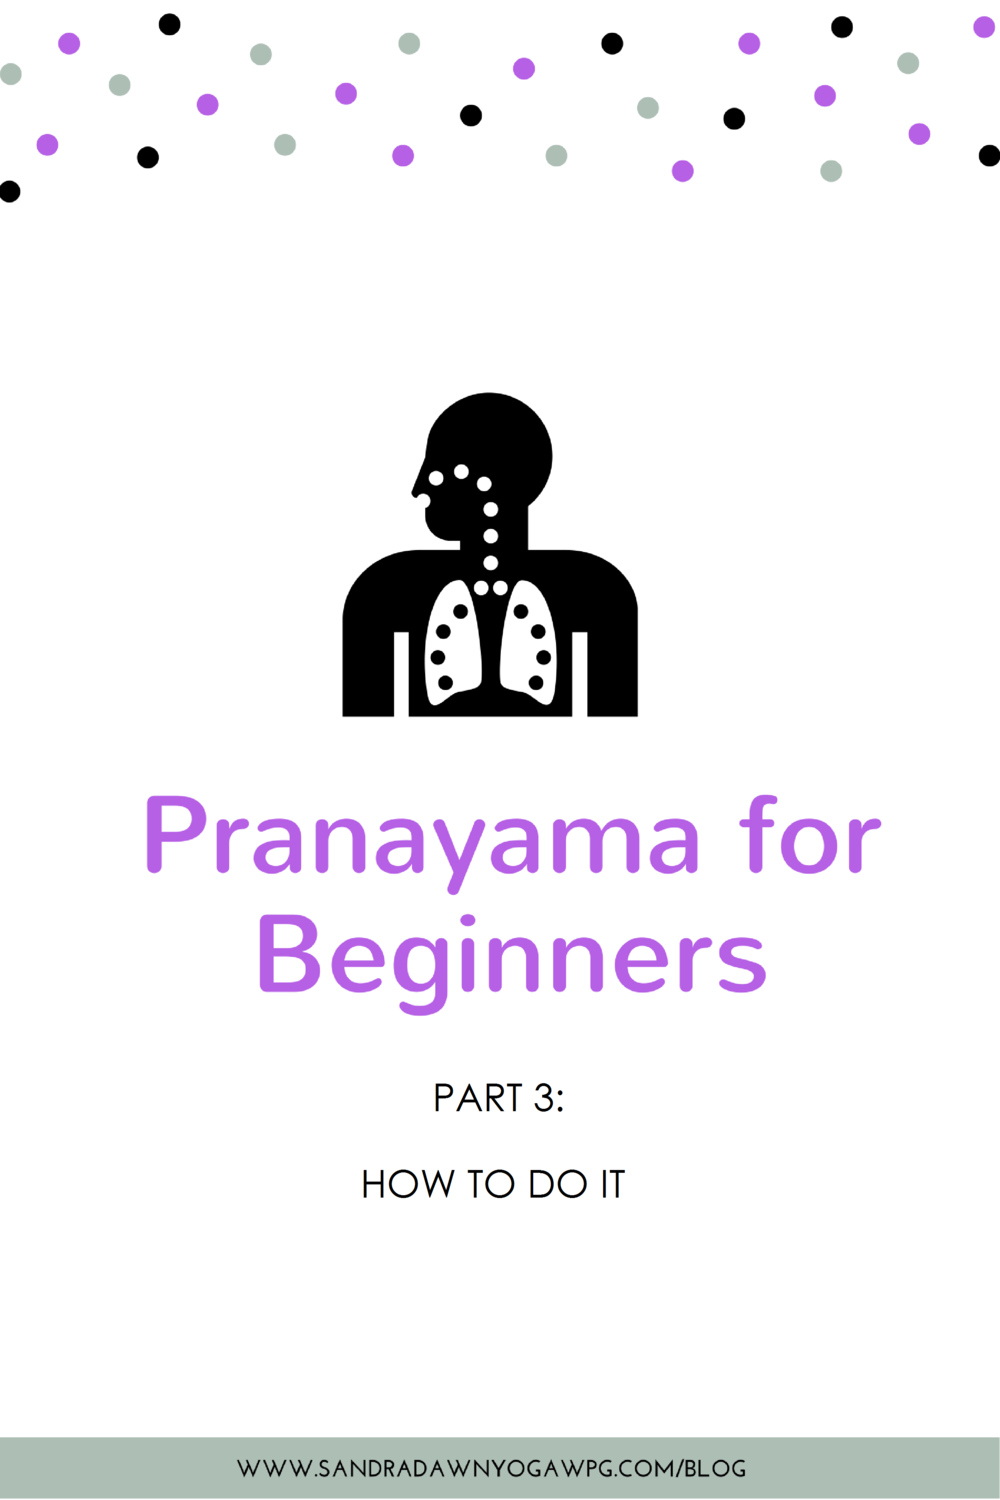 pranayama-for-beginners-part-3